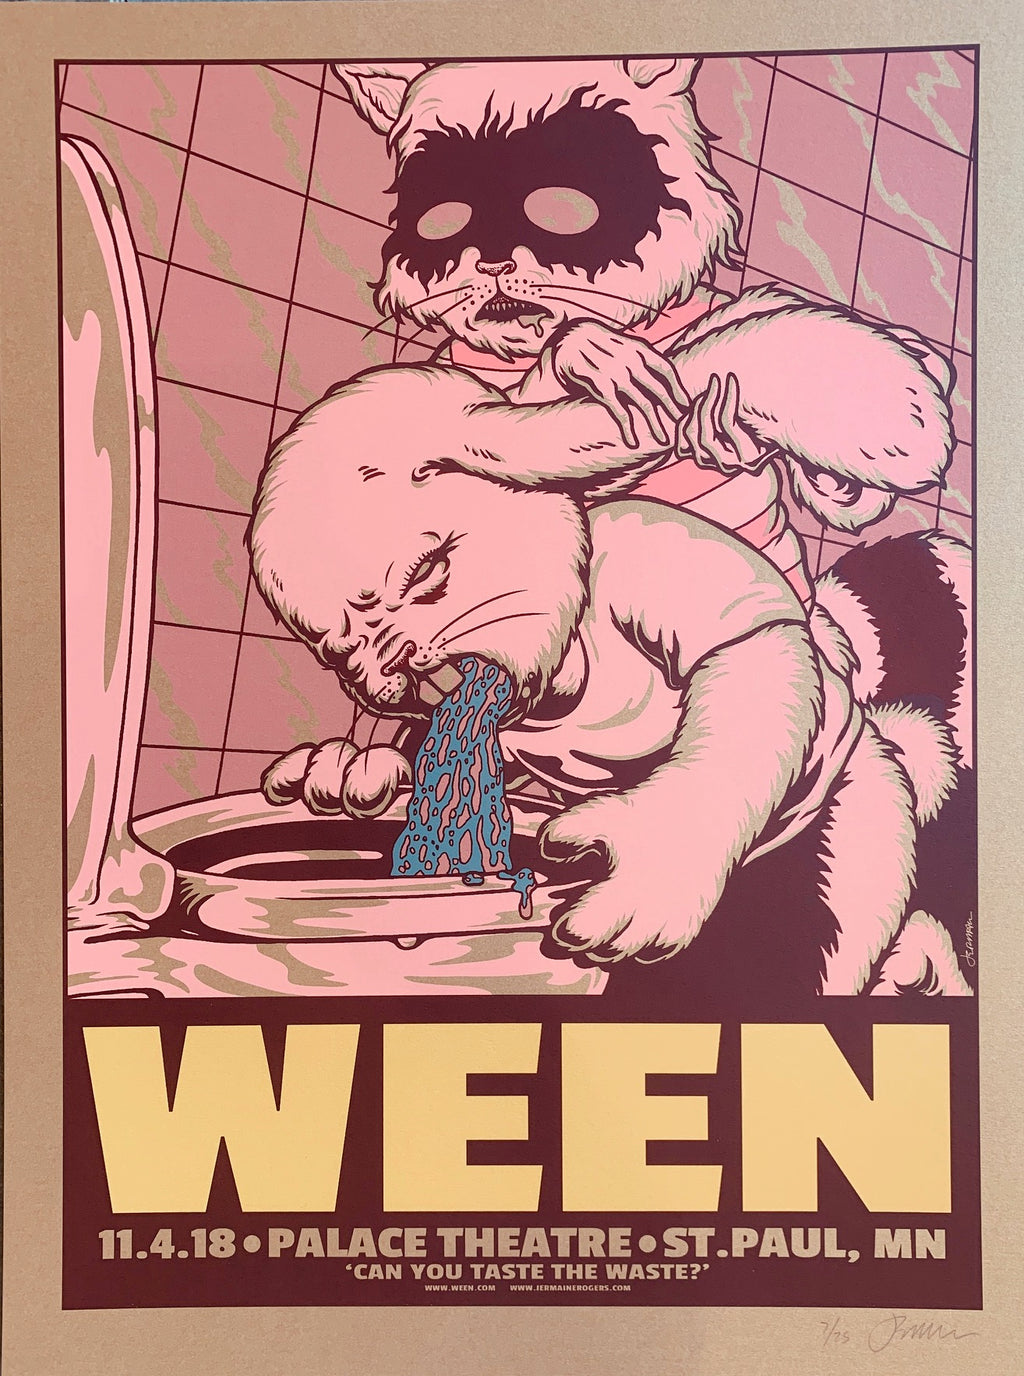 WEEN St Paul 11.04.18 vomit 7/25